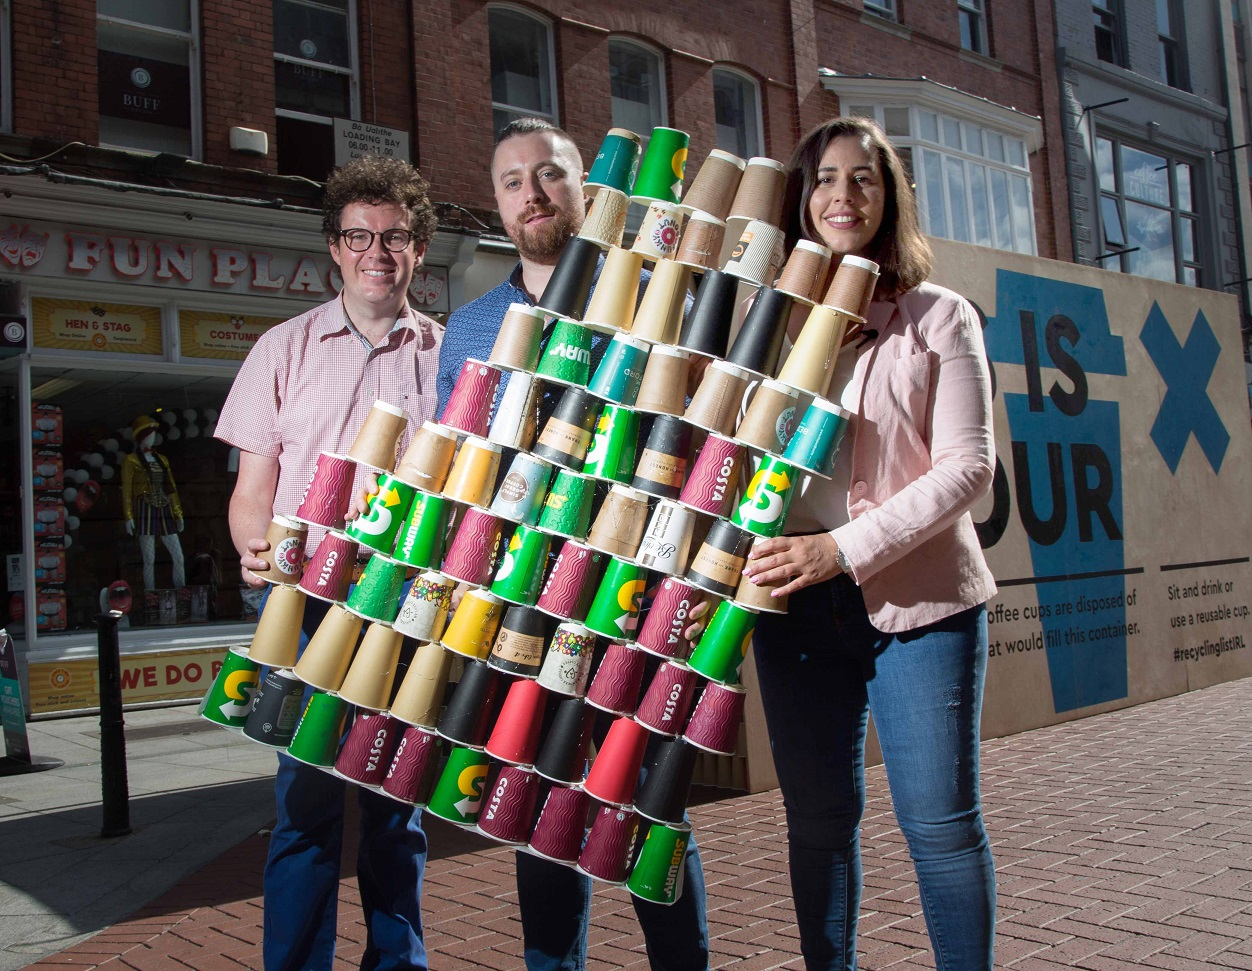 In Ireland Single Use Coffee Cups Cannot Be Disposed Of Recycling Bins